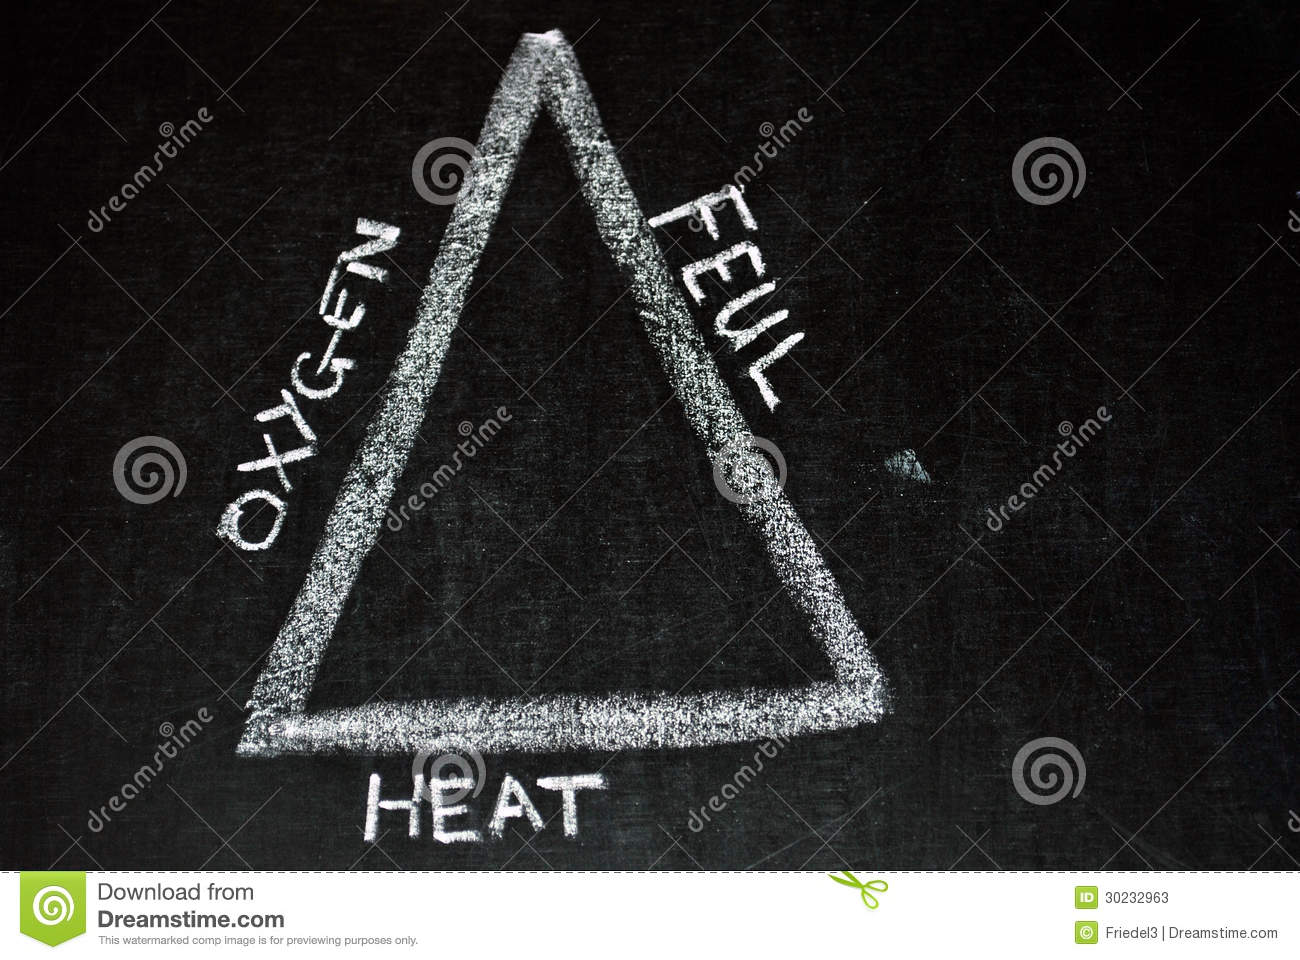 3 Elements of Fire Triangle http://www.dreamstime.com/stock-photos-illustration-fire-triangle-three-elements-heat-fuel-oxygen-needed-combustion-image30232963